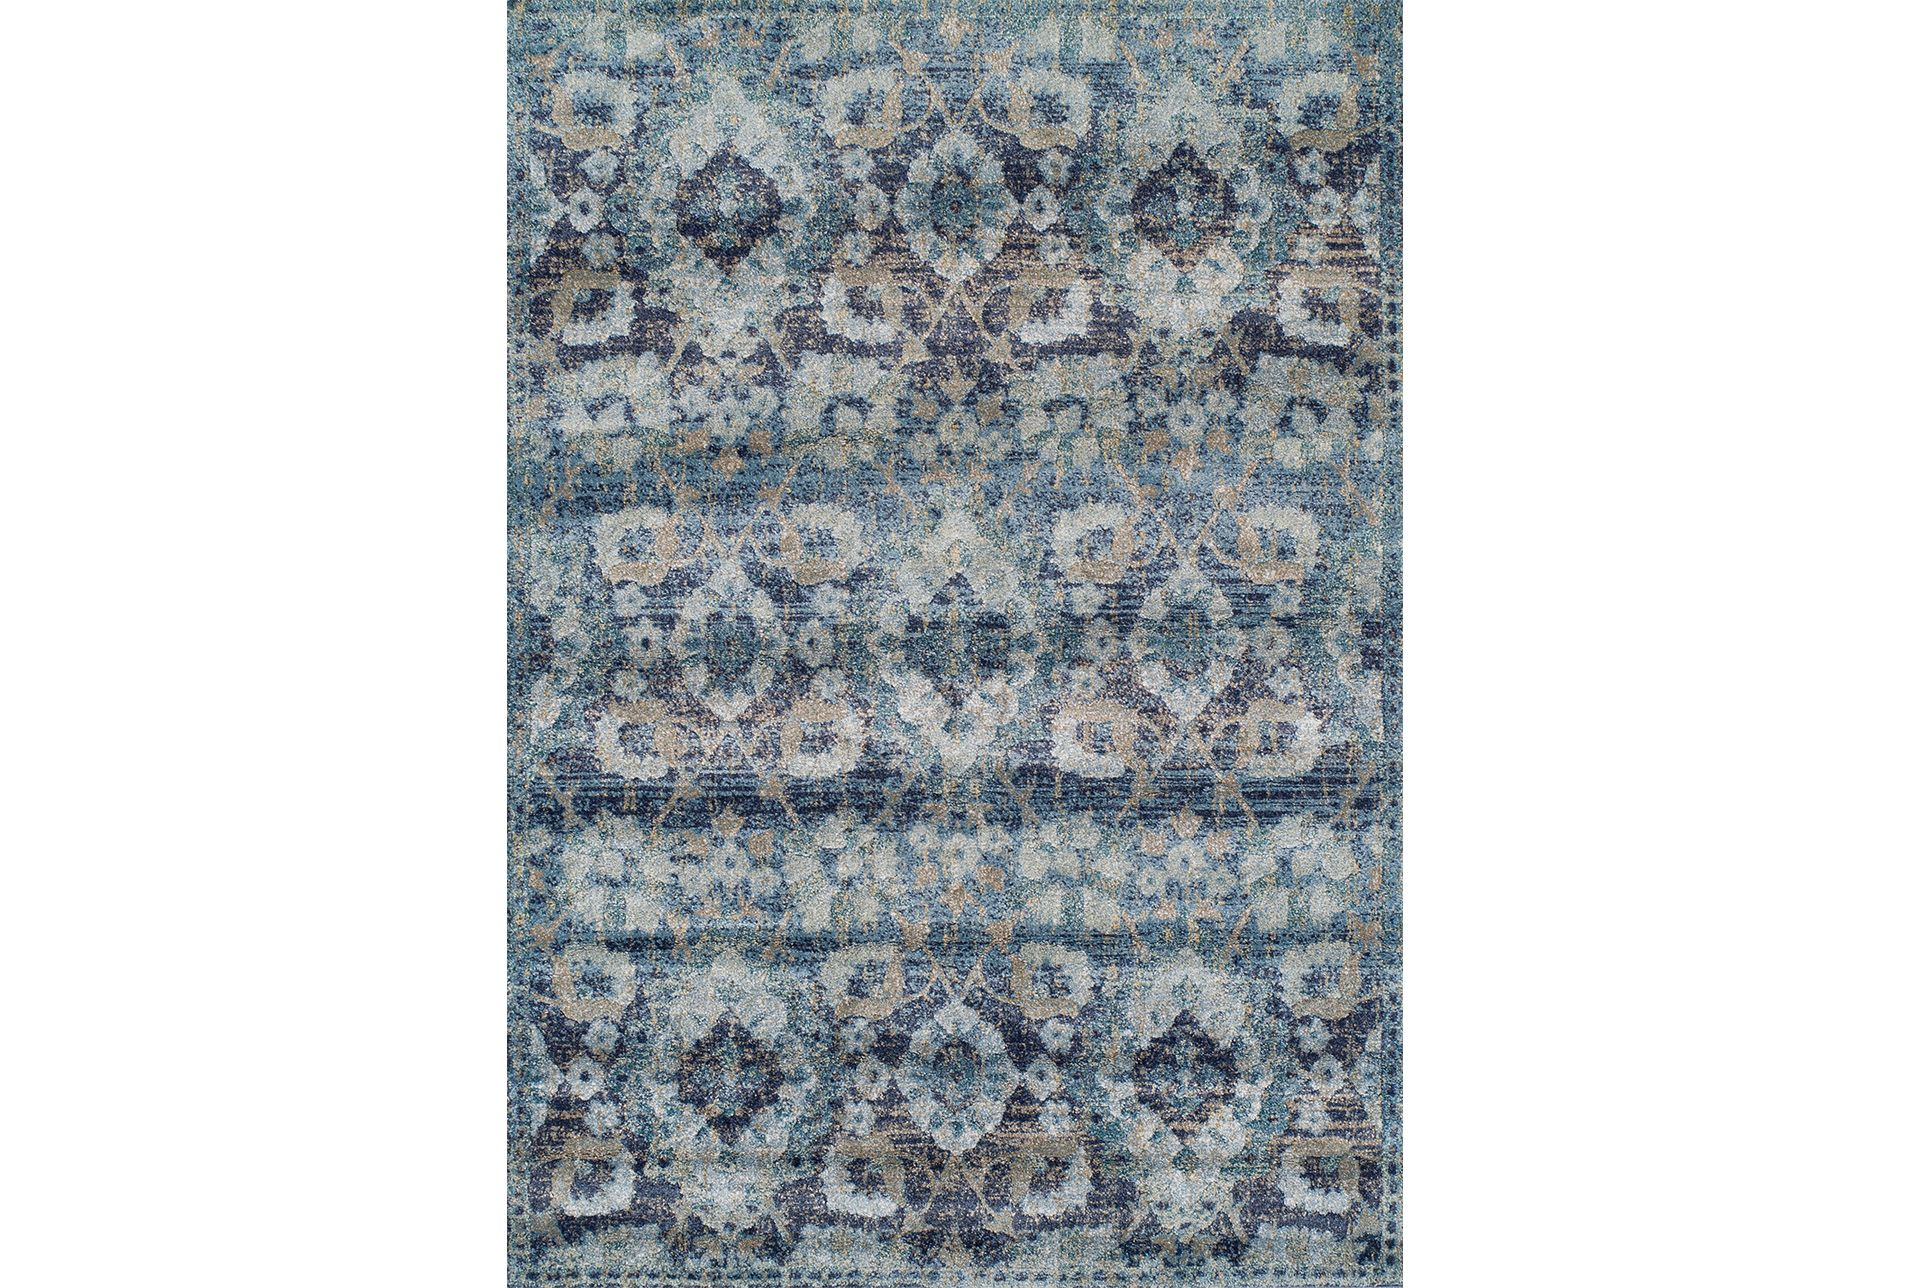 94X127 Rug-Valiant Navy | Products | Area rugs, Rugs, Navy ...